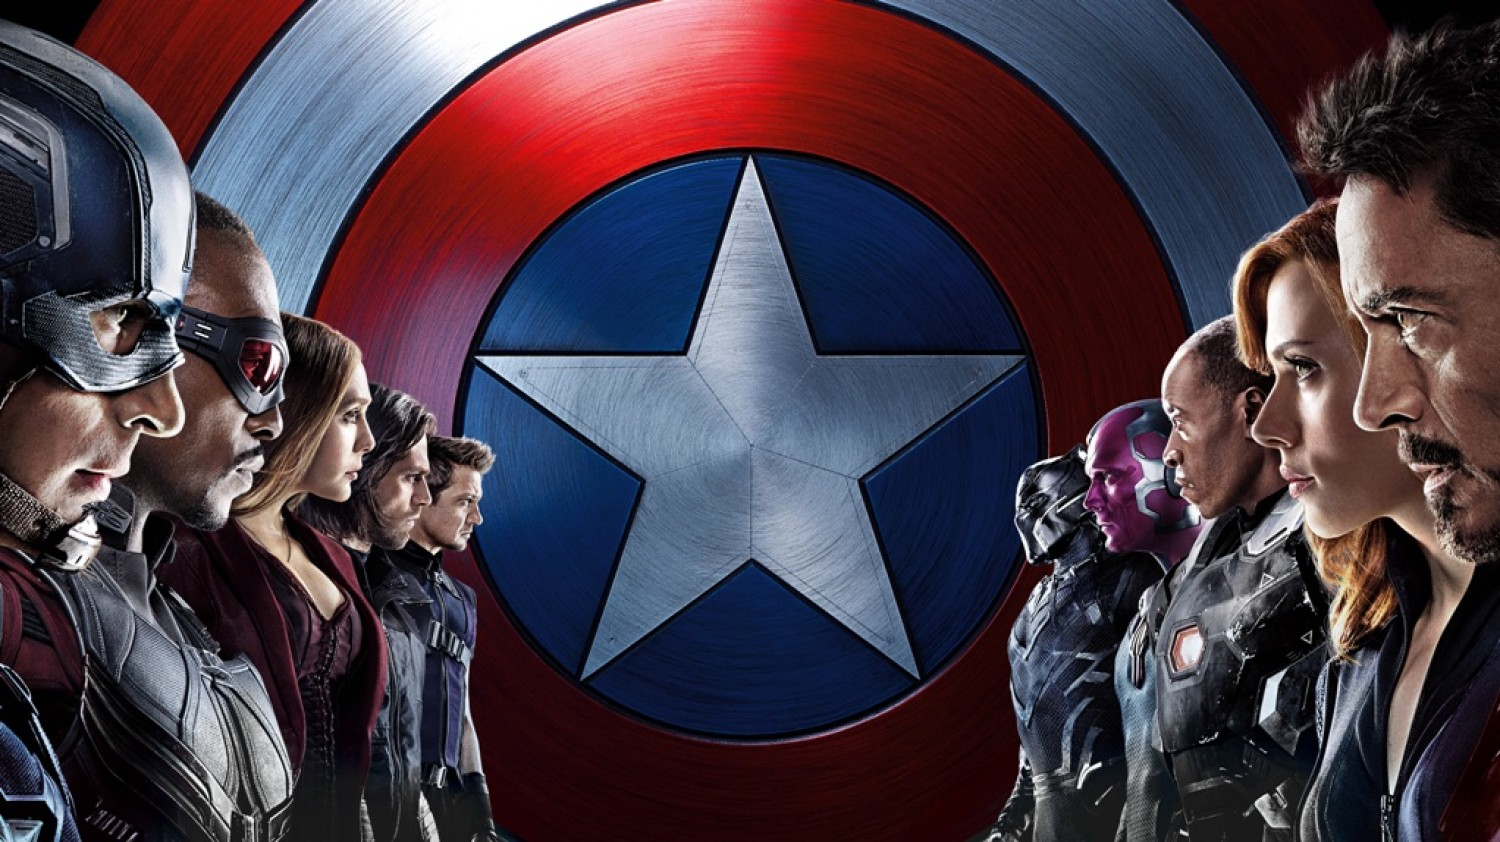 Captain America: Civil War (2016) Anthony and Joe Russo - Movie Review